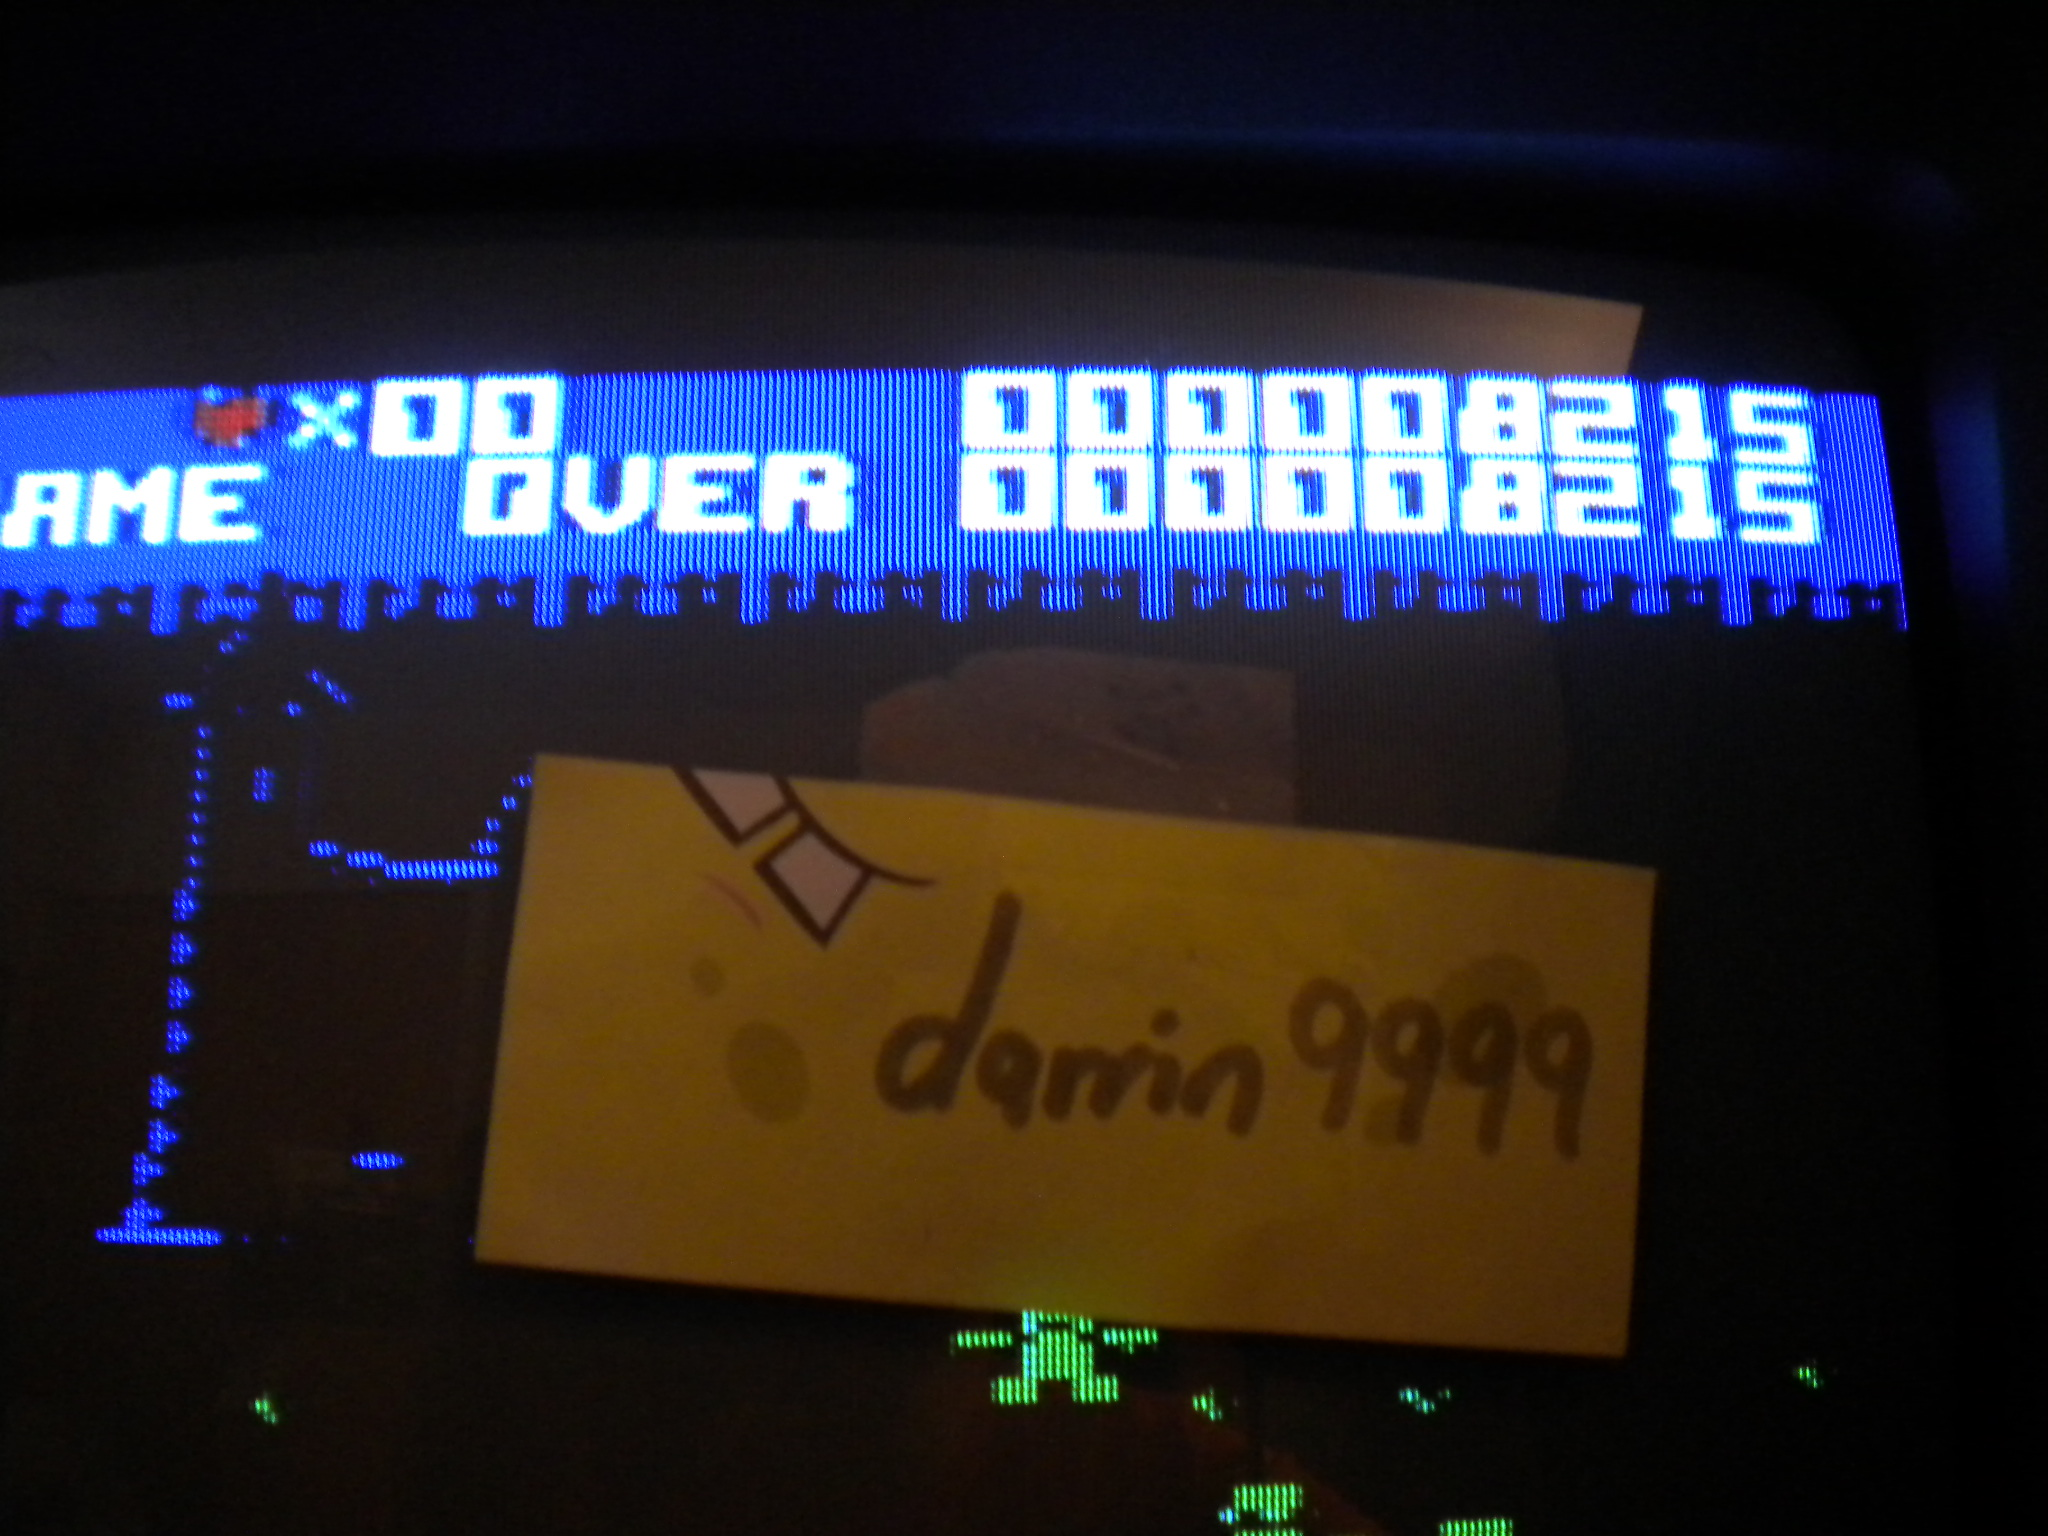 darrin9999: Jeepers Creepers (Colecovision) 8,215 points on 2016-11-25 12:31:49